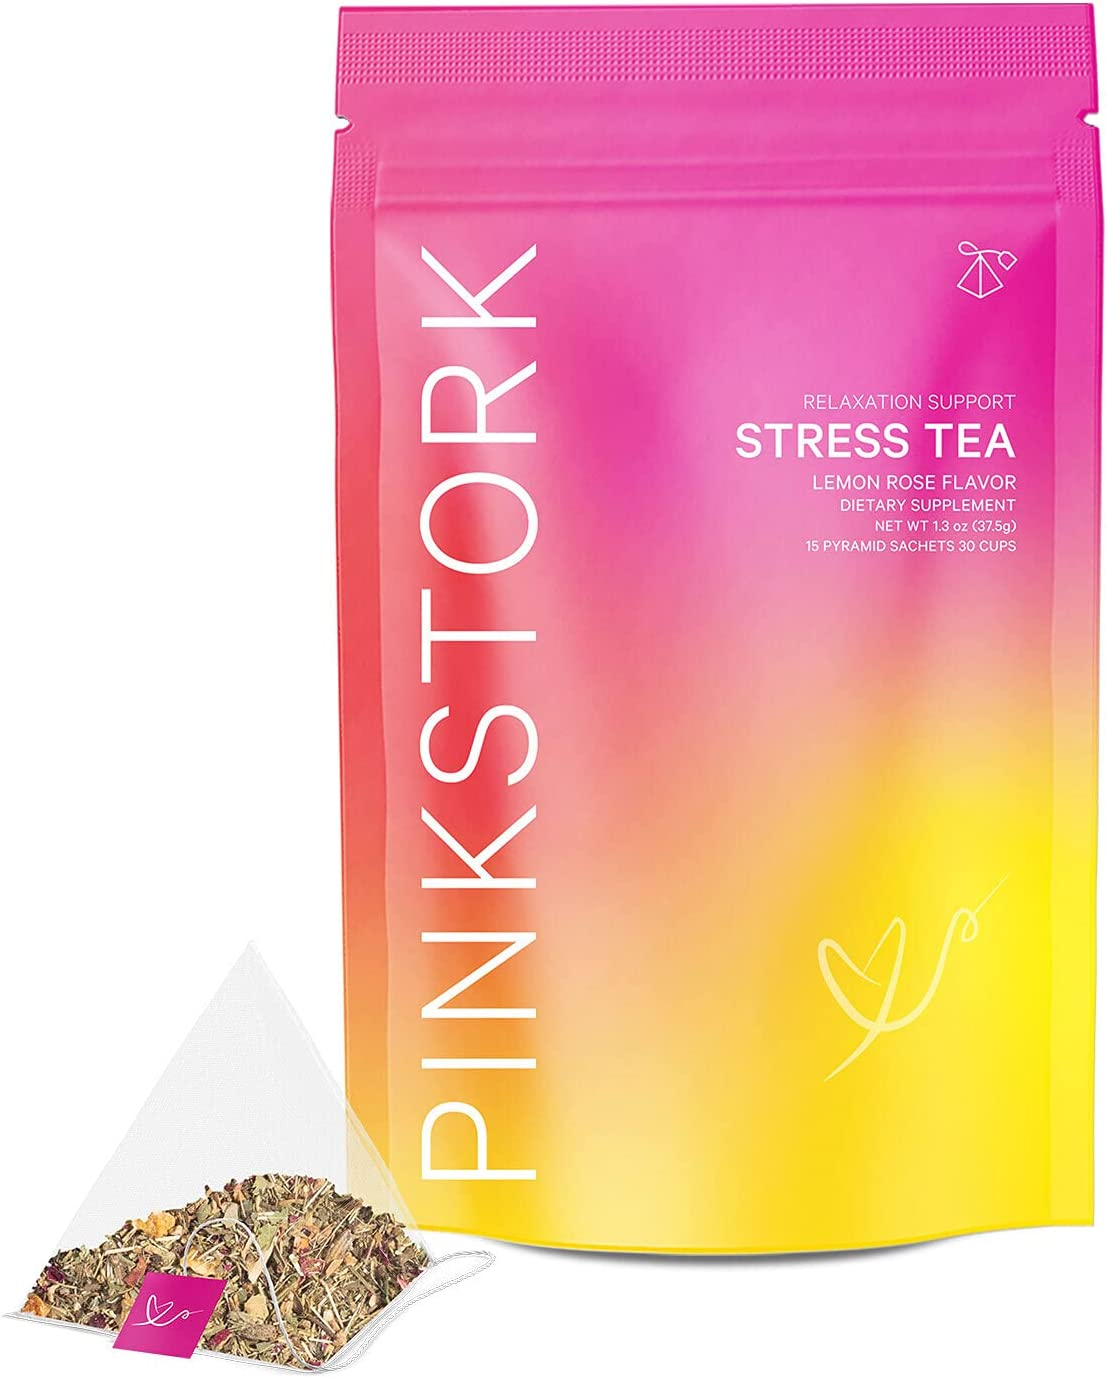 Pink Stork Stress Tea: Lemon Rose 100% Organic Herbal Tea for Relaxation + Stress Relief, with Ashwagandha + Chamomile + Lavender, Women-Owned, 30 Cups